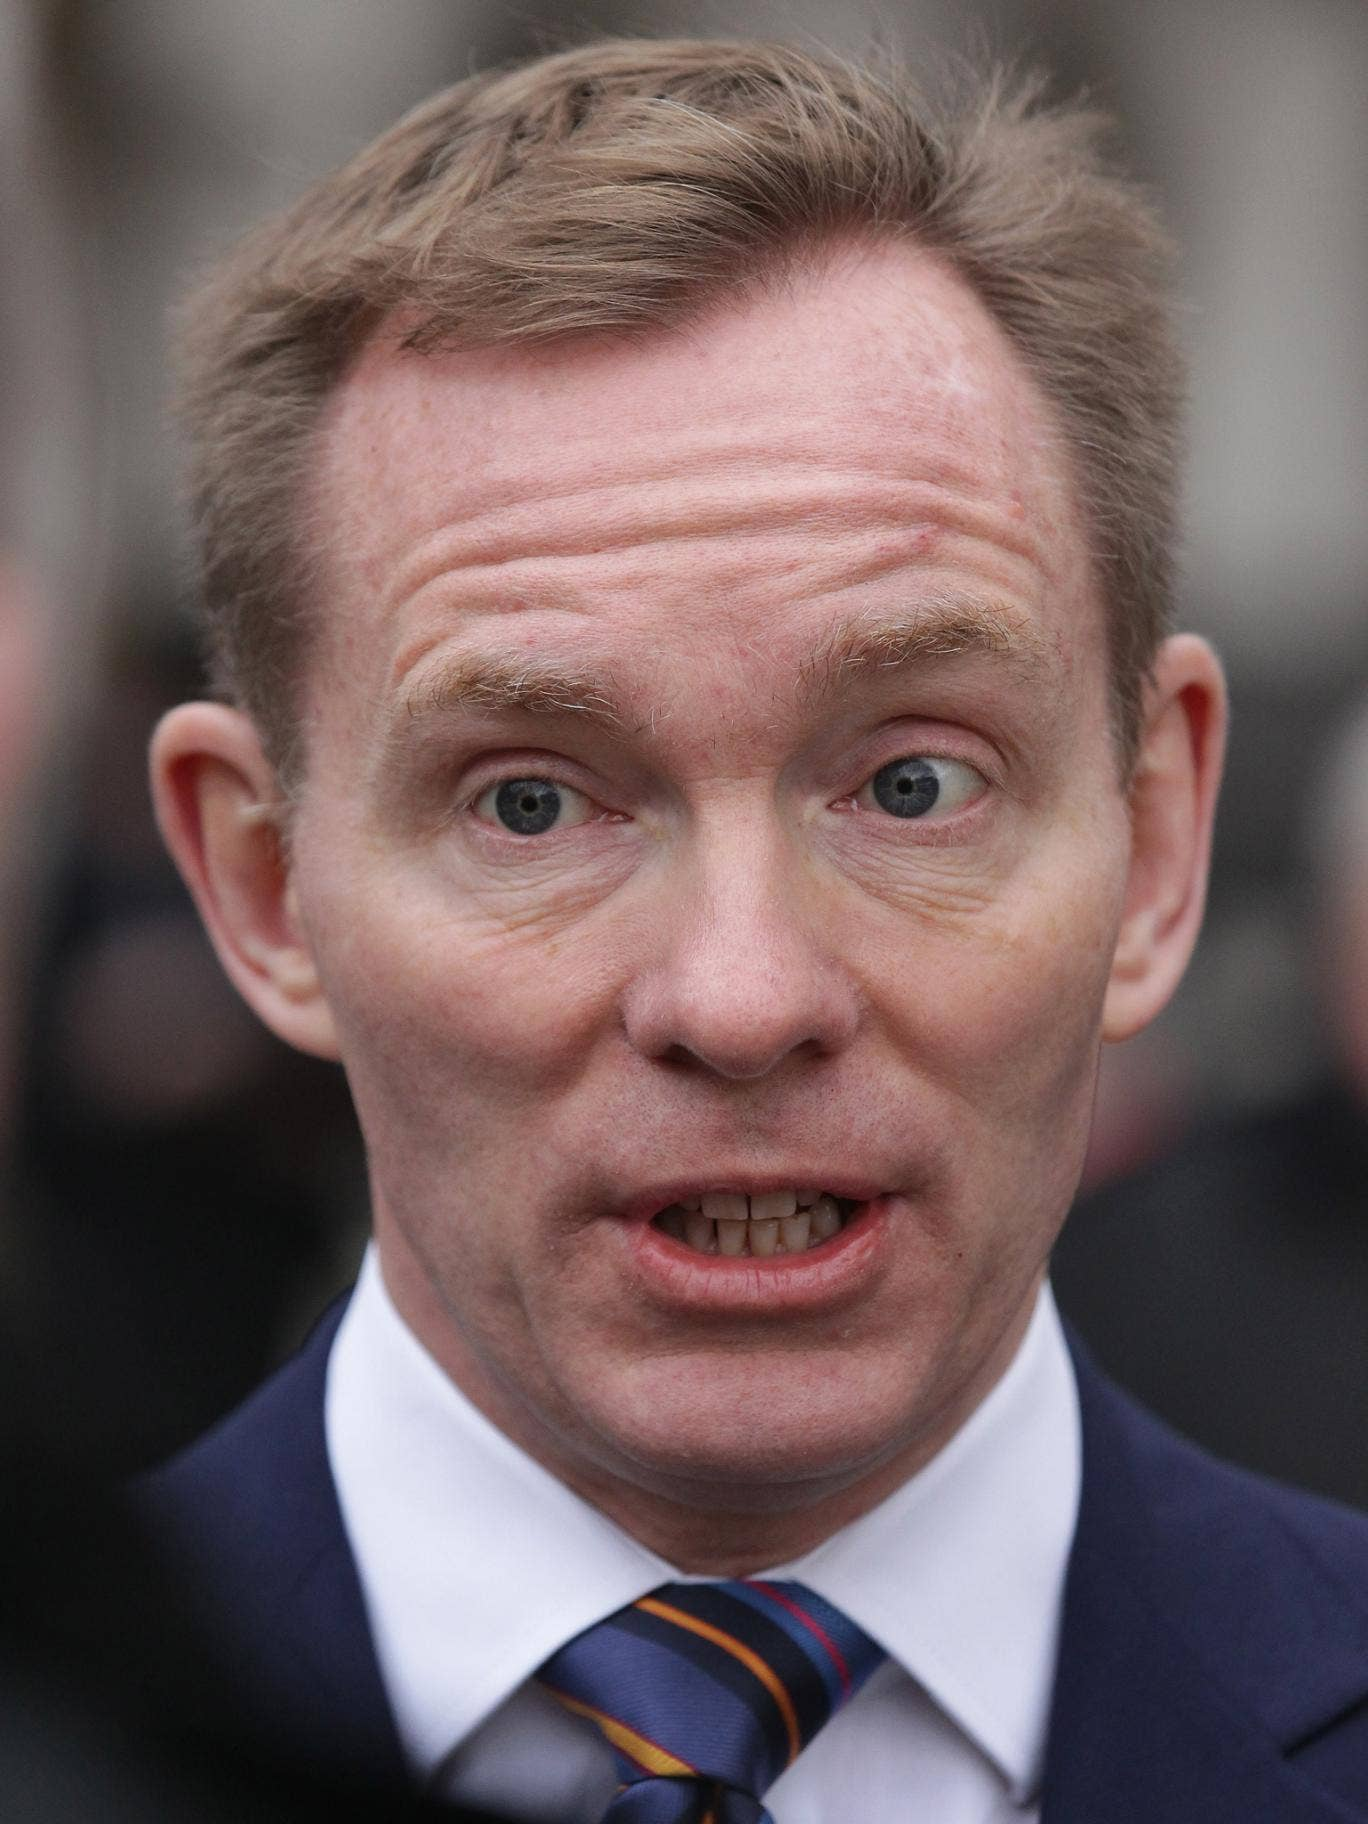 Chris Bryant says he was targeted by the CFoR